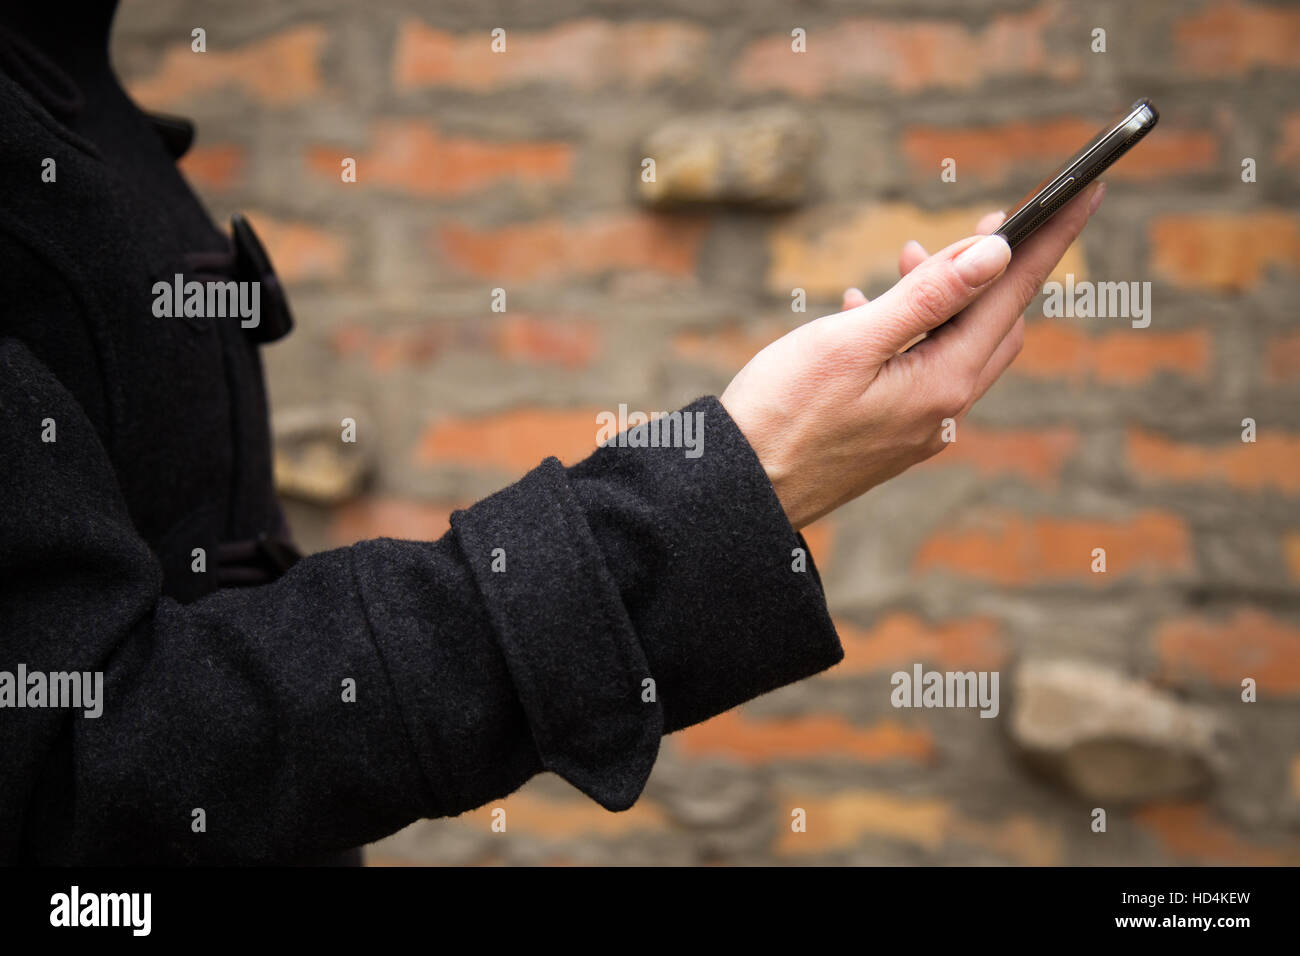 Woman's hand holding mobile phone Stock Photo